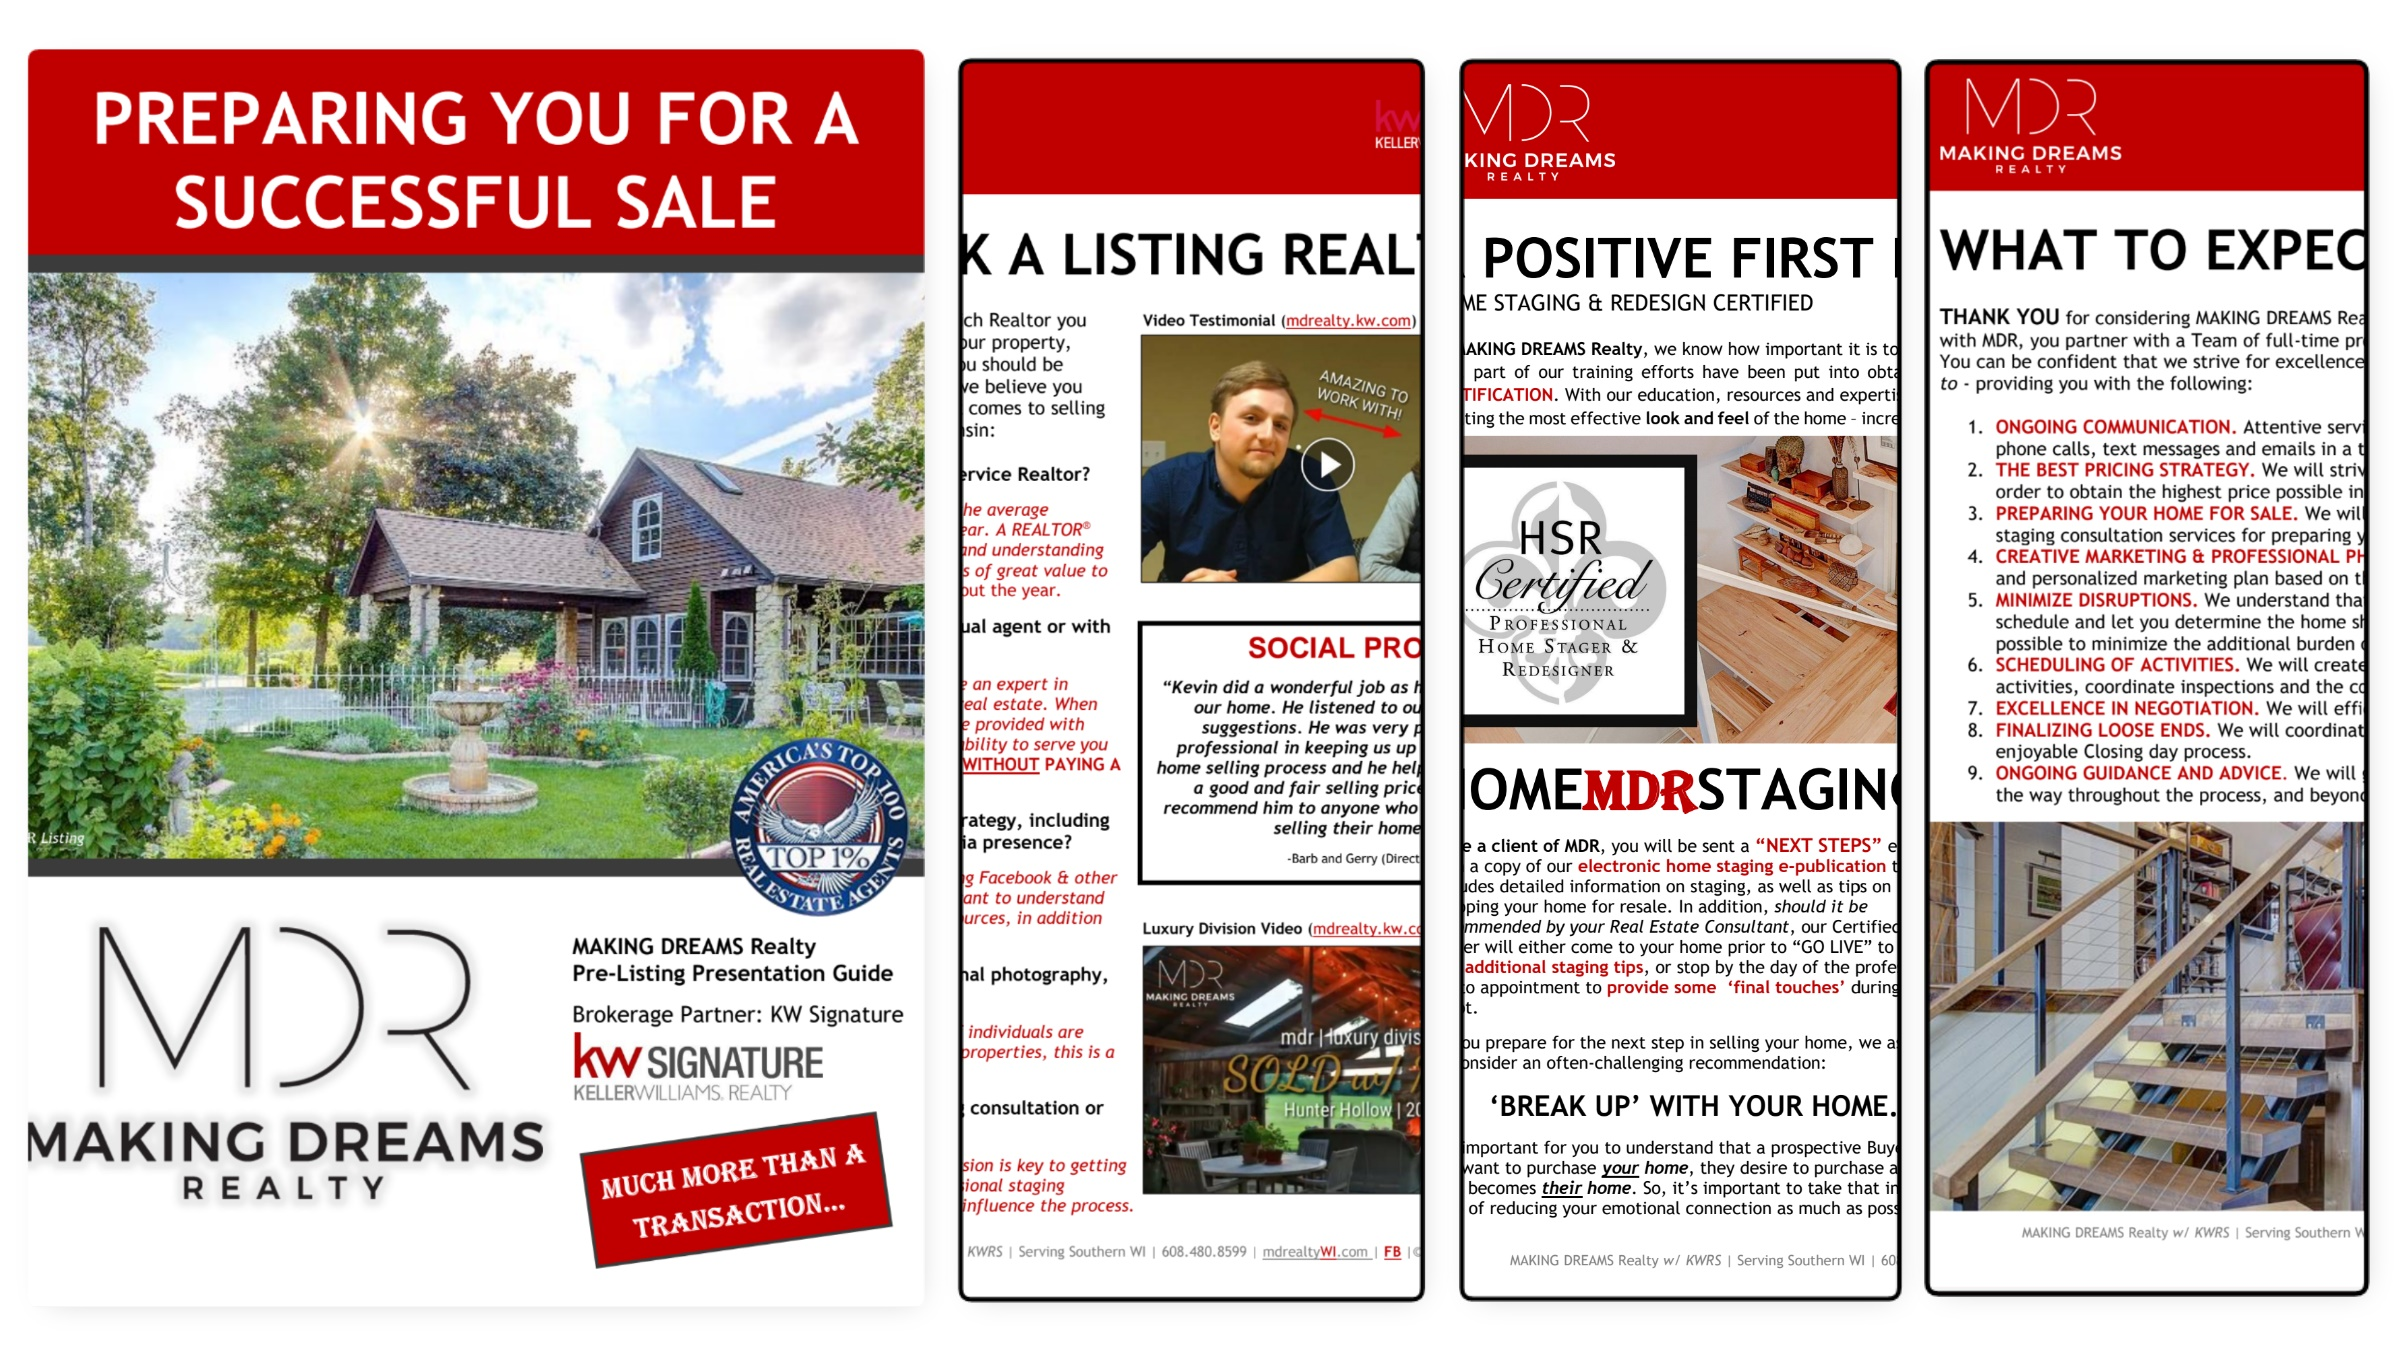 Ultimate guide to preparing your home for a successful sale. Presented by MAKING DREAMS Realty